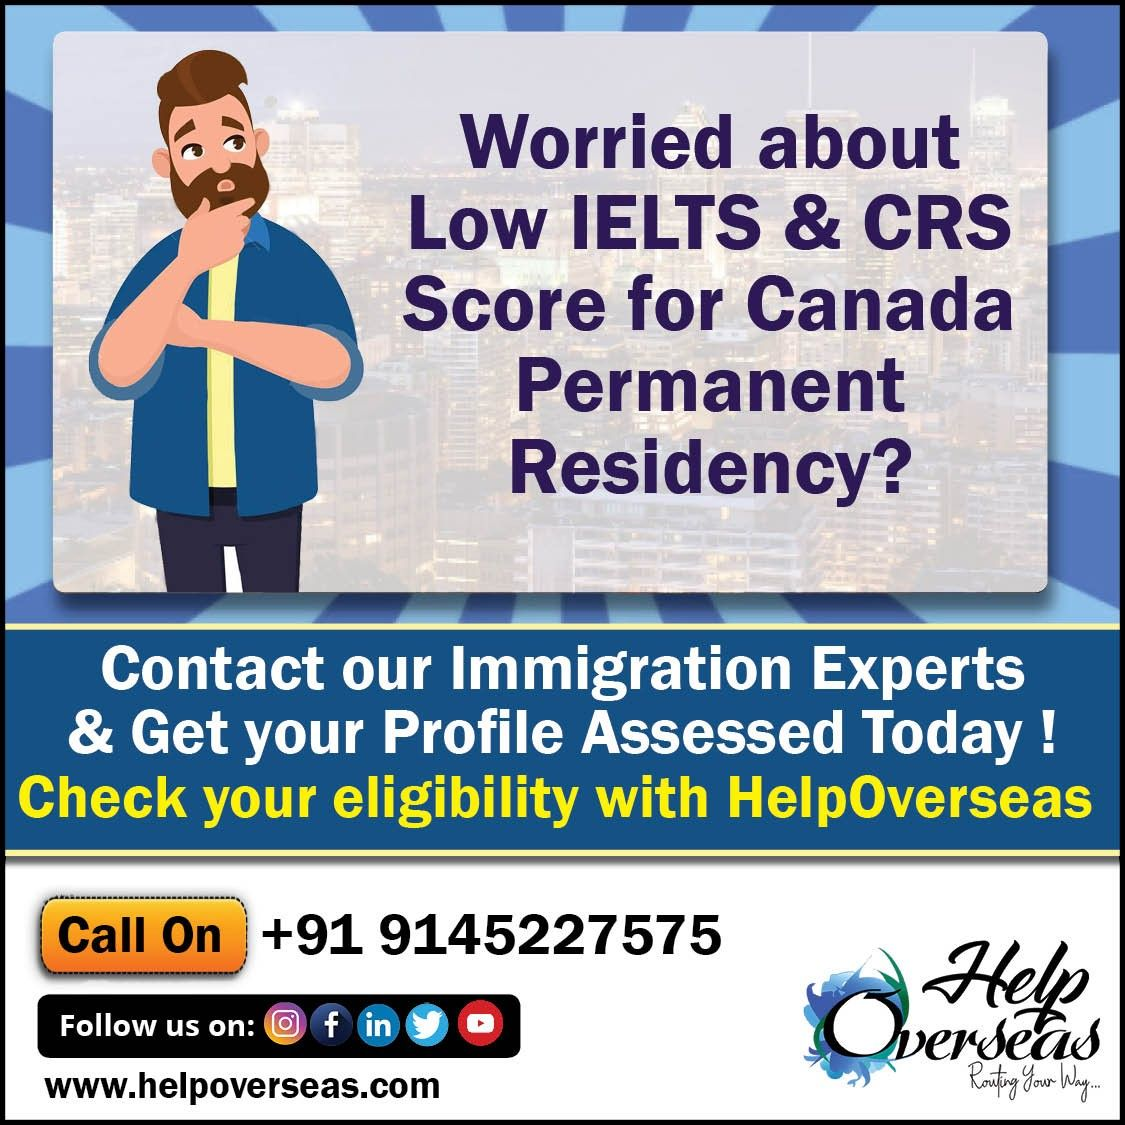 Worried About Low Ielts Crs Score For Canada Permanent Residency Ielts No Worries Canada